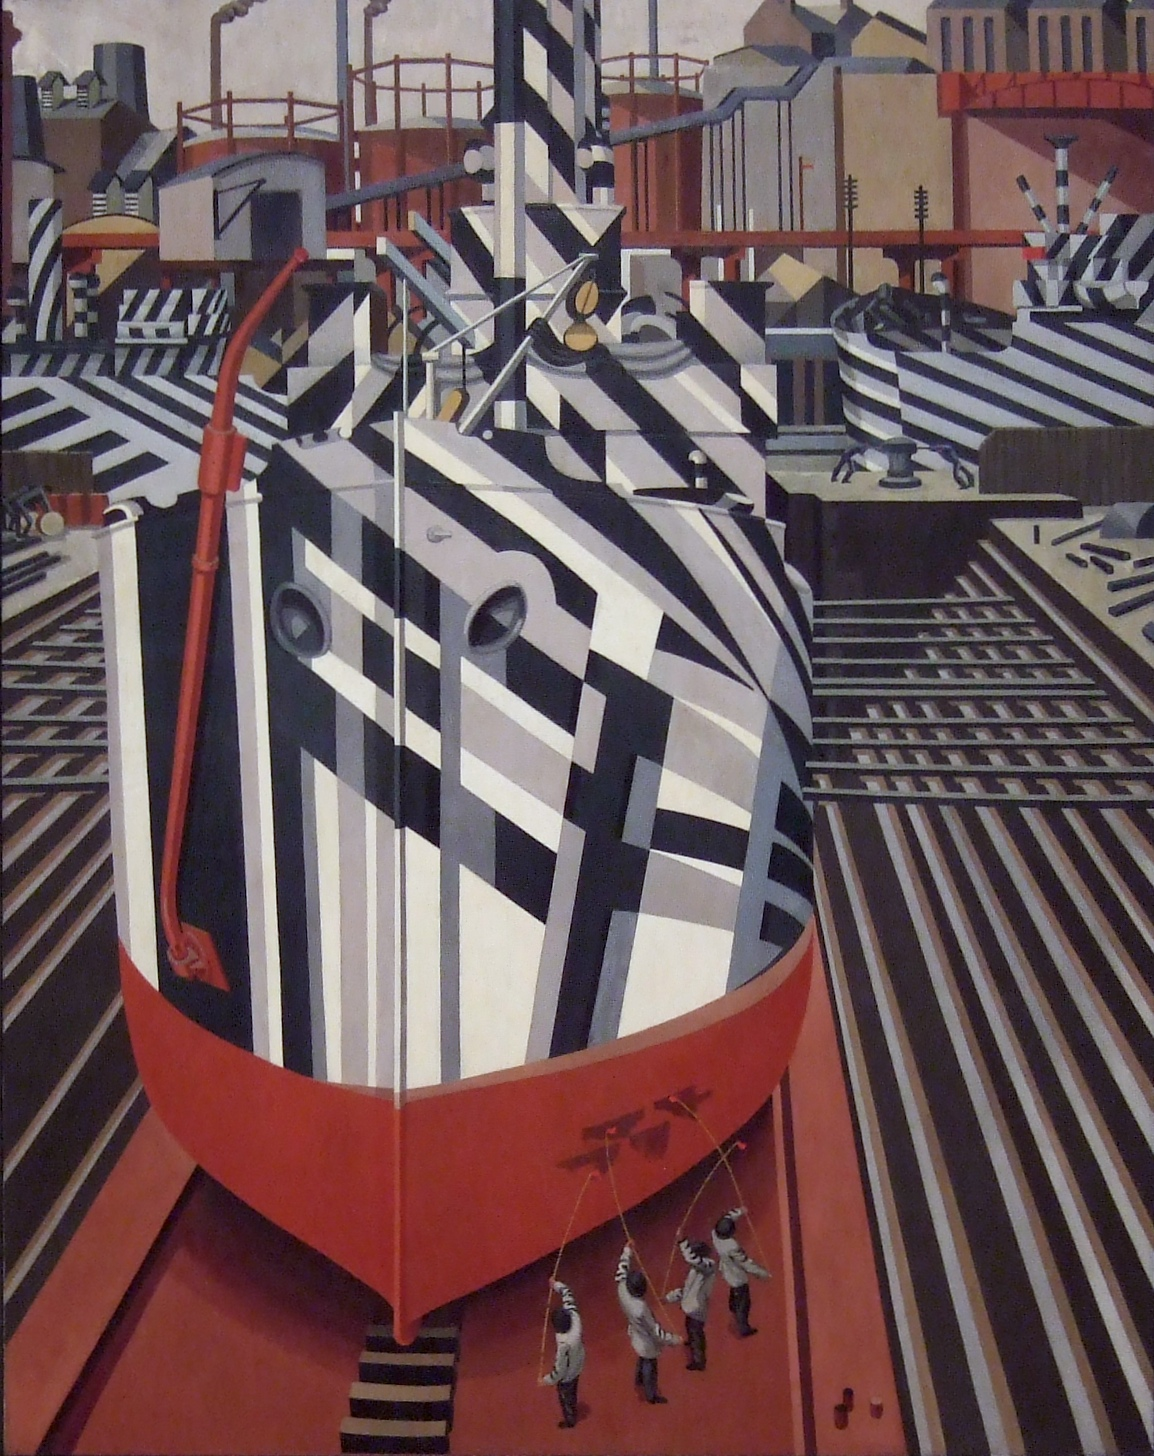 Dazzle-ships in Drydock at Liverpool, 1919.